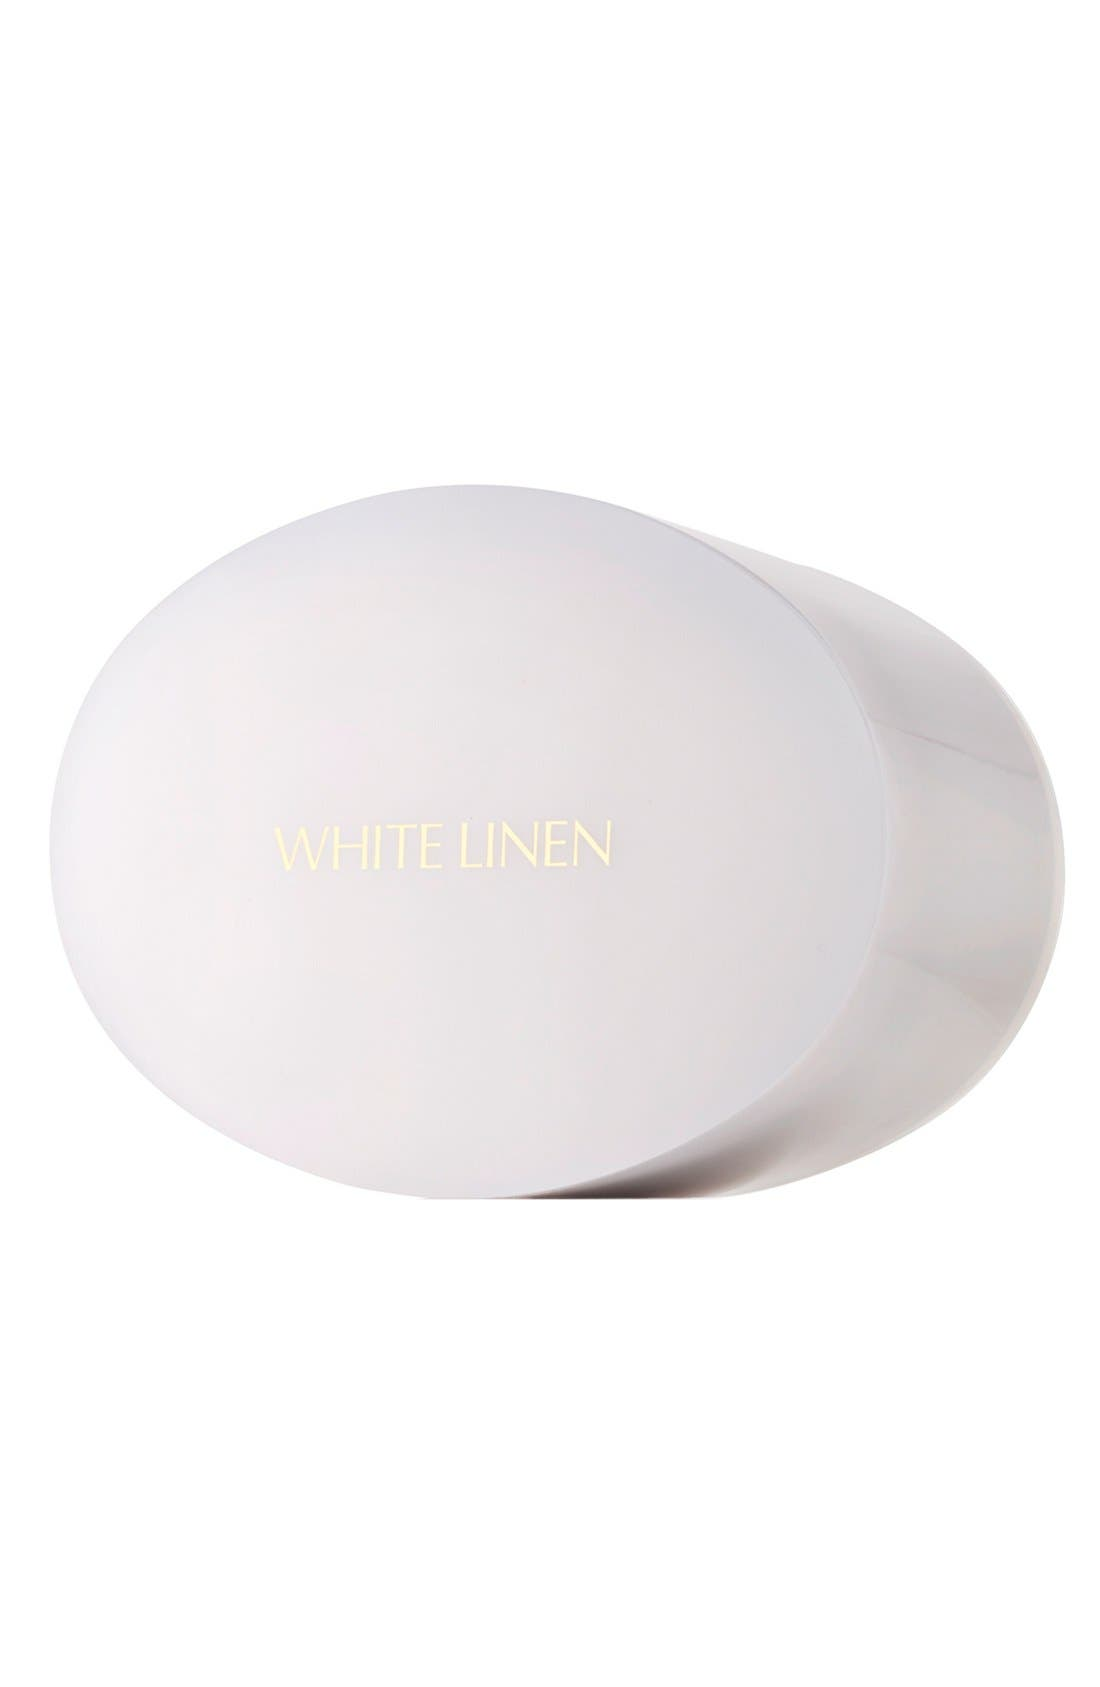 ESTÉE LAUDER, White Linen Perfumed Body Powder with Puff, Main thumbnail 1, color, 000